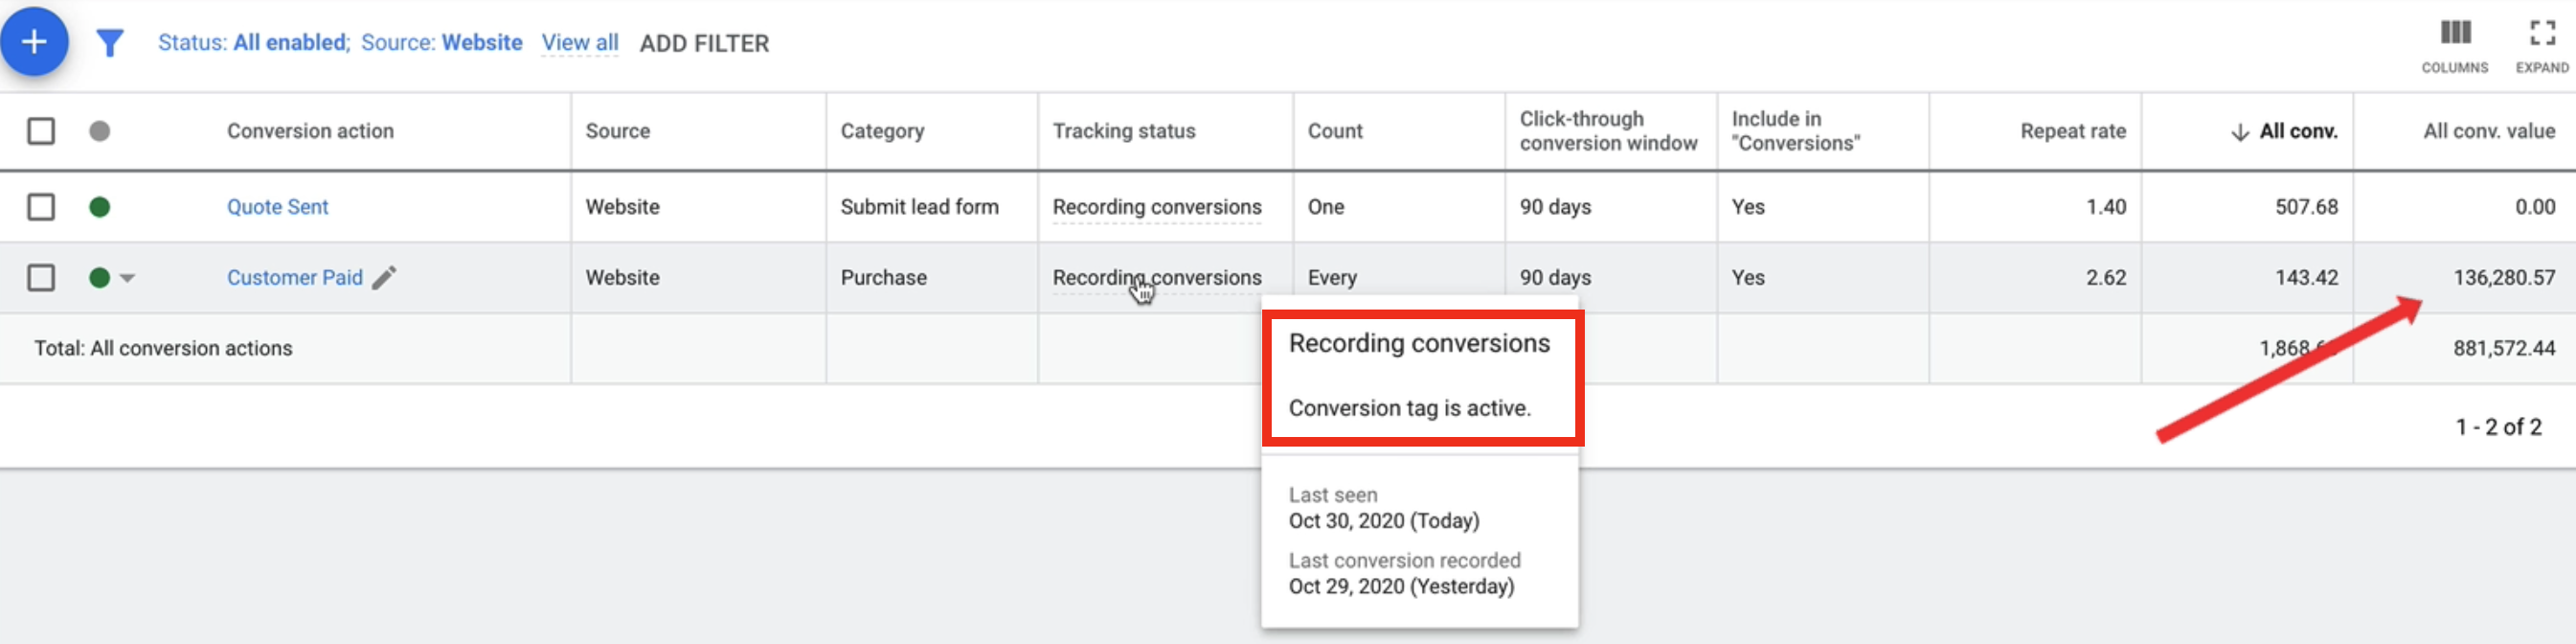 Viewing the conversion tag status and conversion value in the conversions view